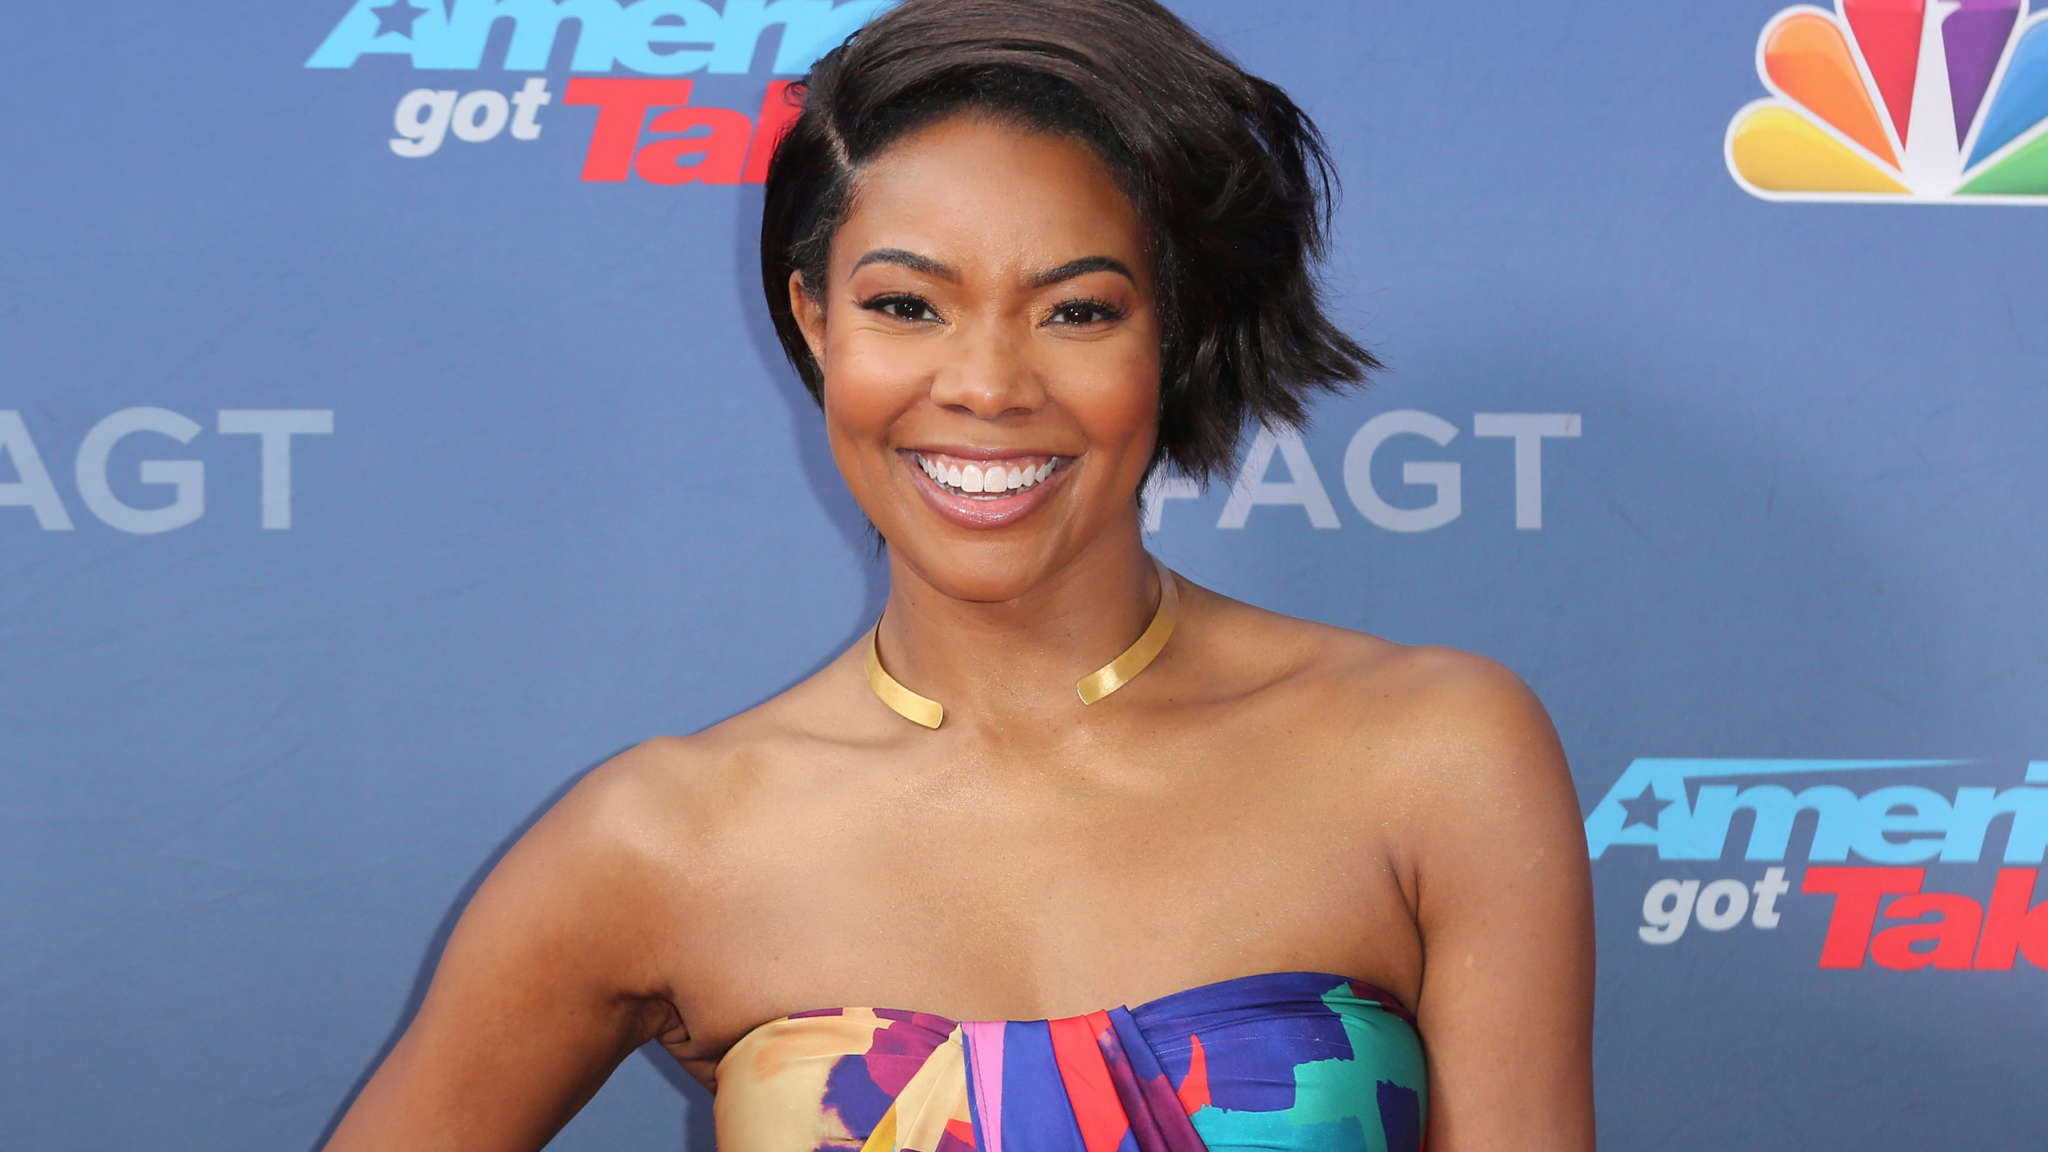 Gabrielle Union Honours Marcelite J. Harris, The First Black Female Major General In The US Military